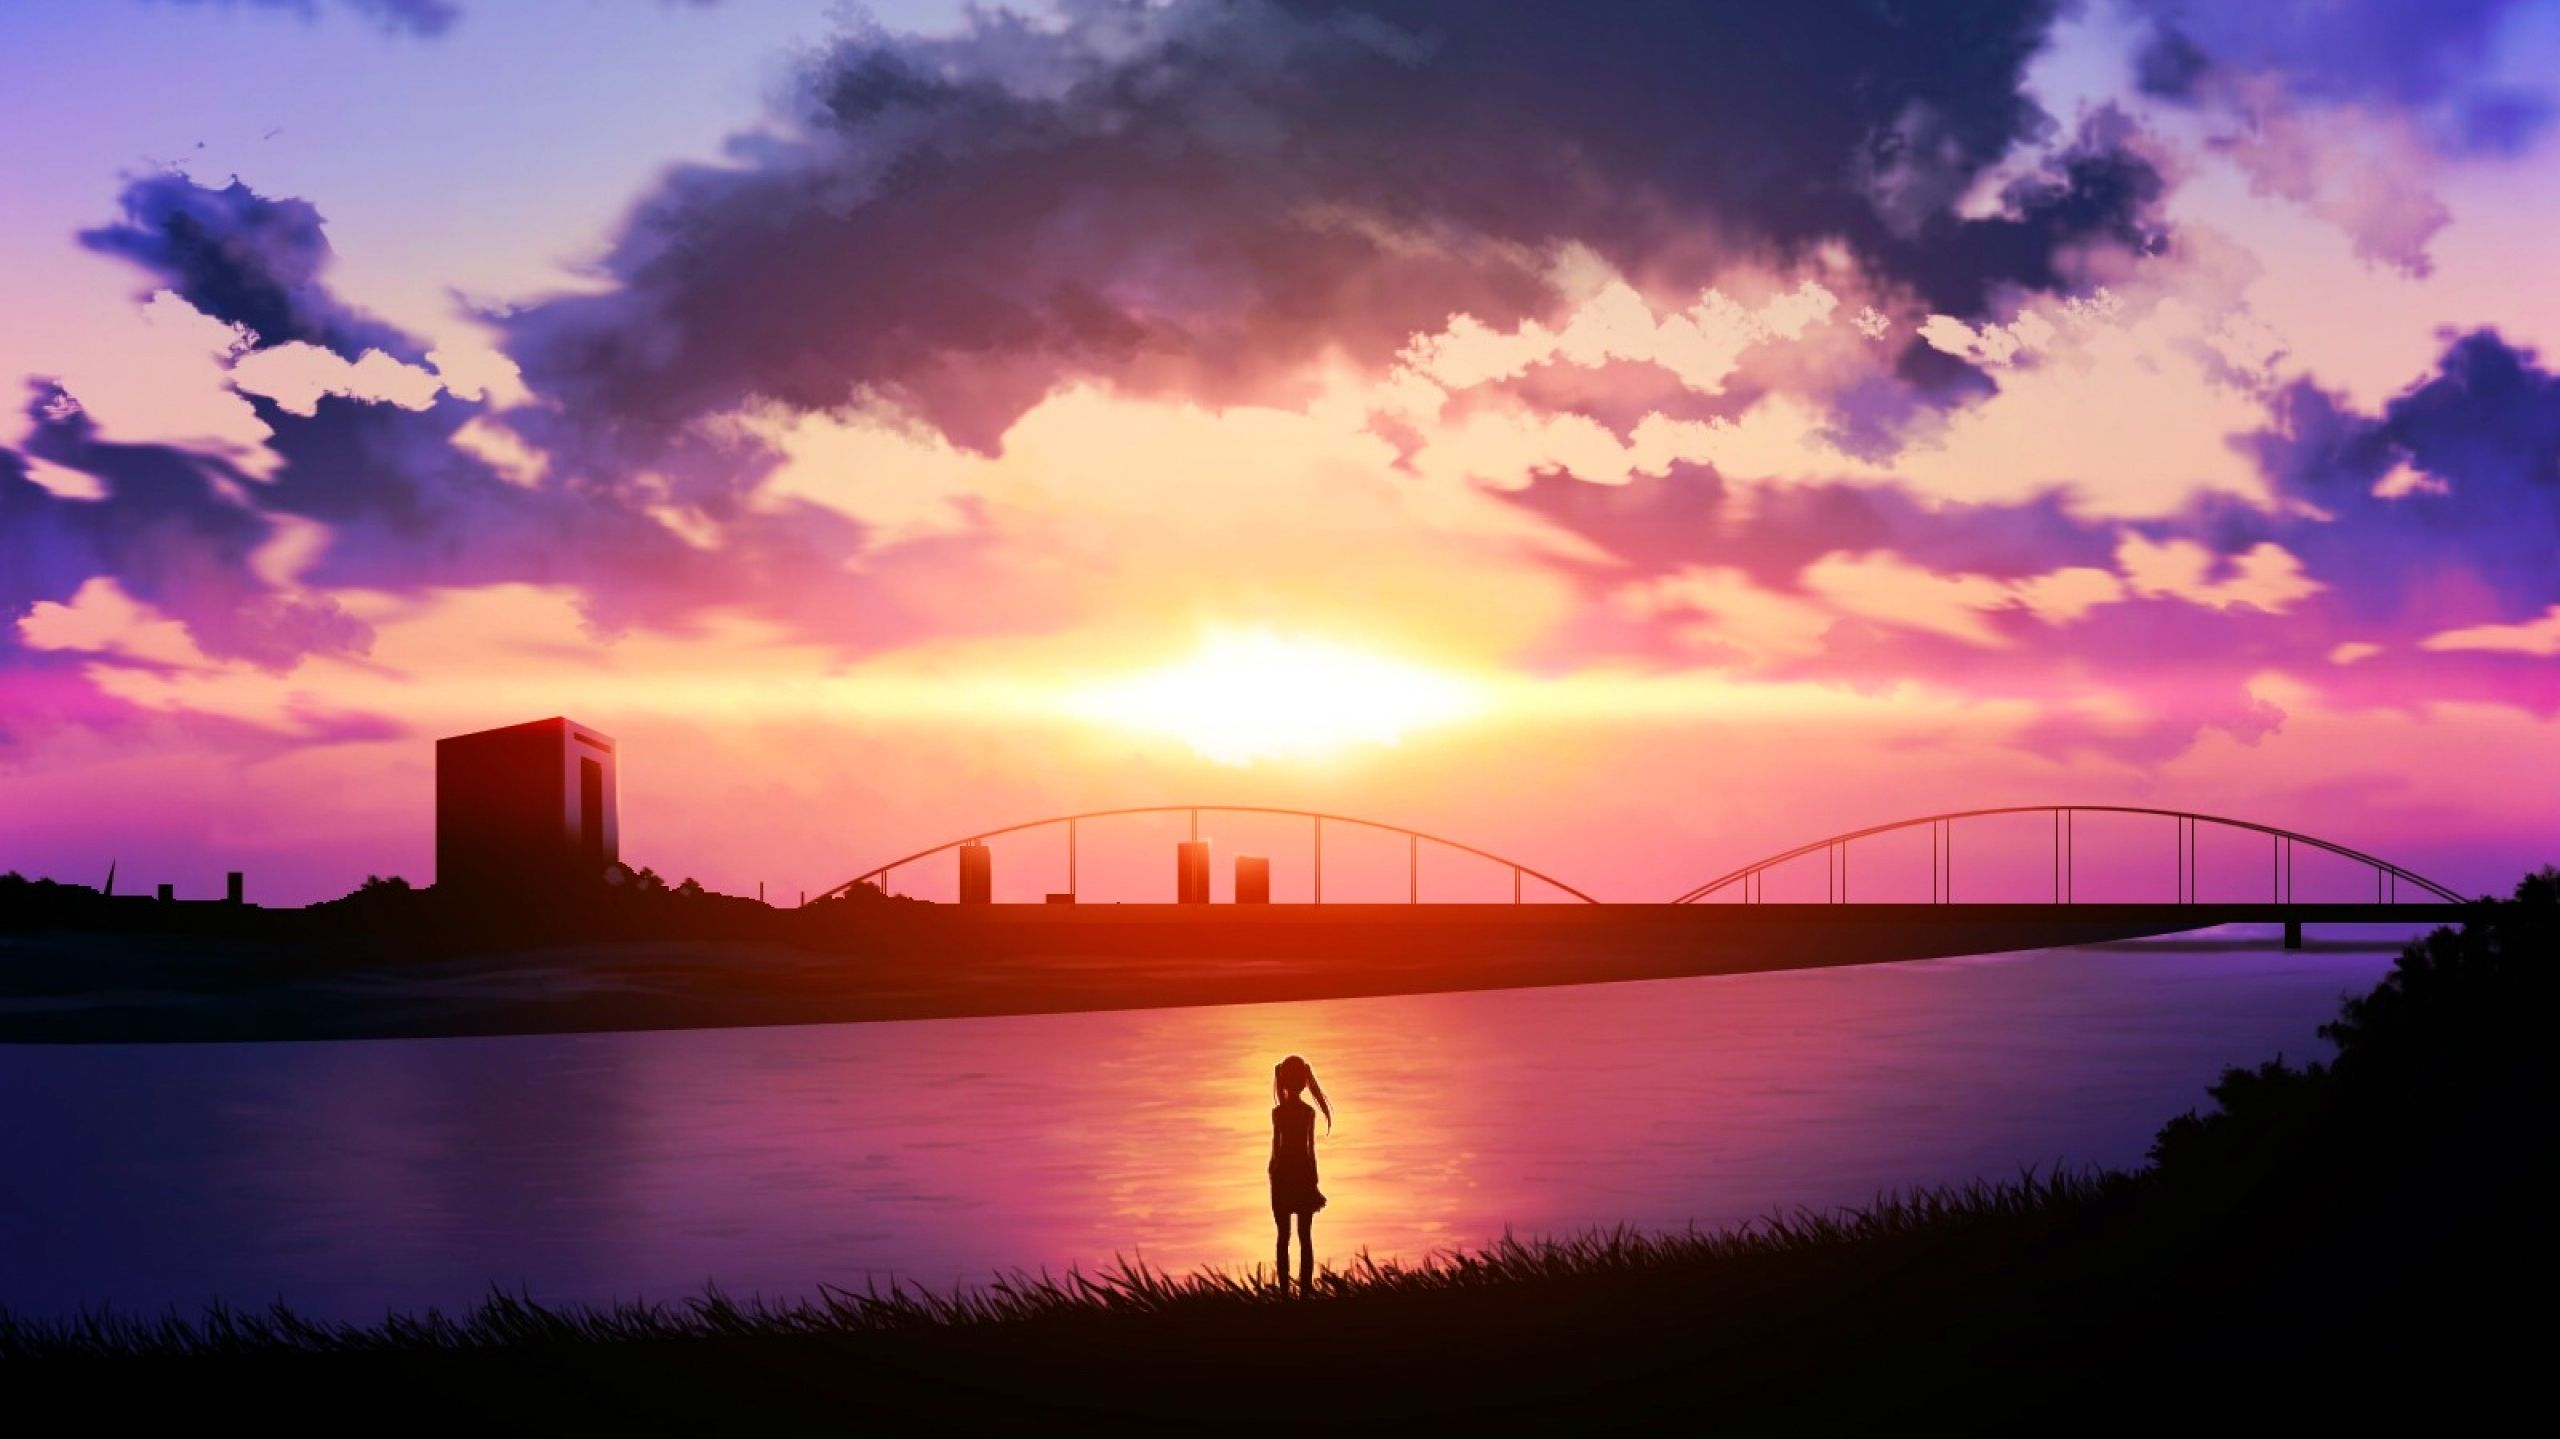 Sunset Scenic Anime scenery, Anime background